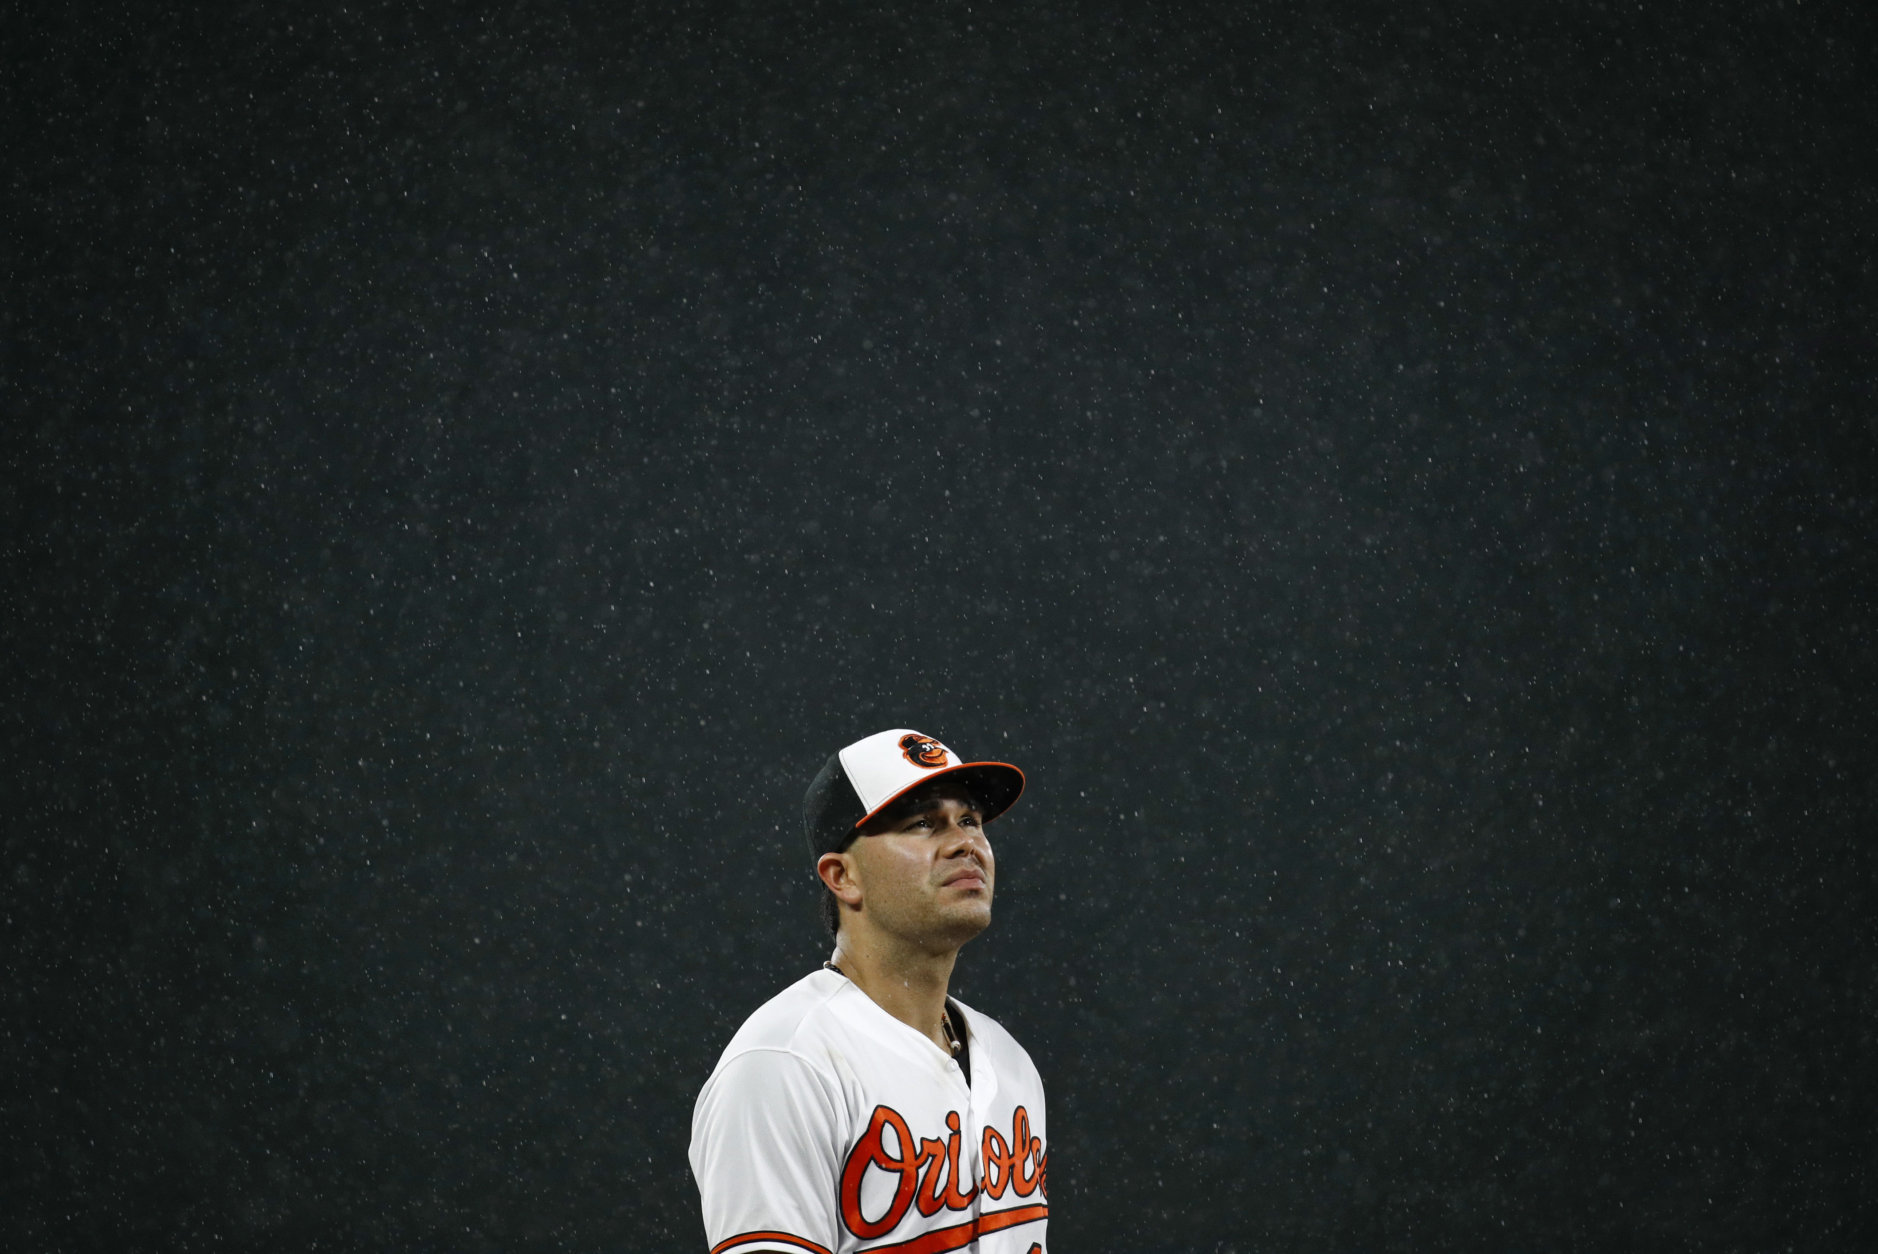 Baltimore Orioles third baseman Renato Nunez looks up as rain falls in the sixth inning of a baseball game against the Boston Red Sox, Tuesday, July 24, 2018, in Baltimore. (AP Photo/Patrick Semansky)